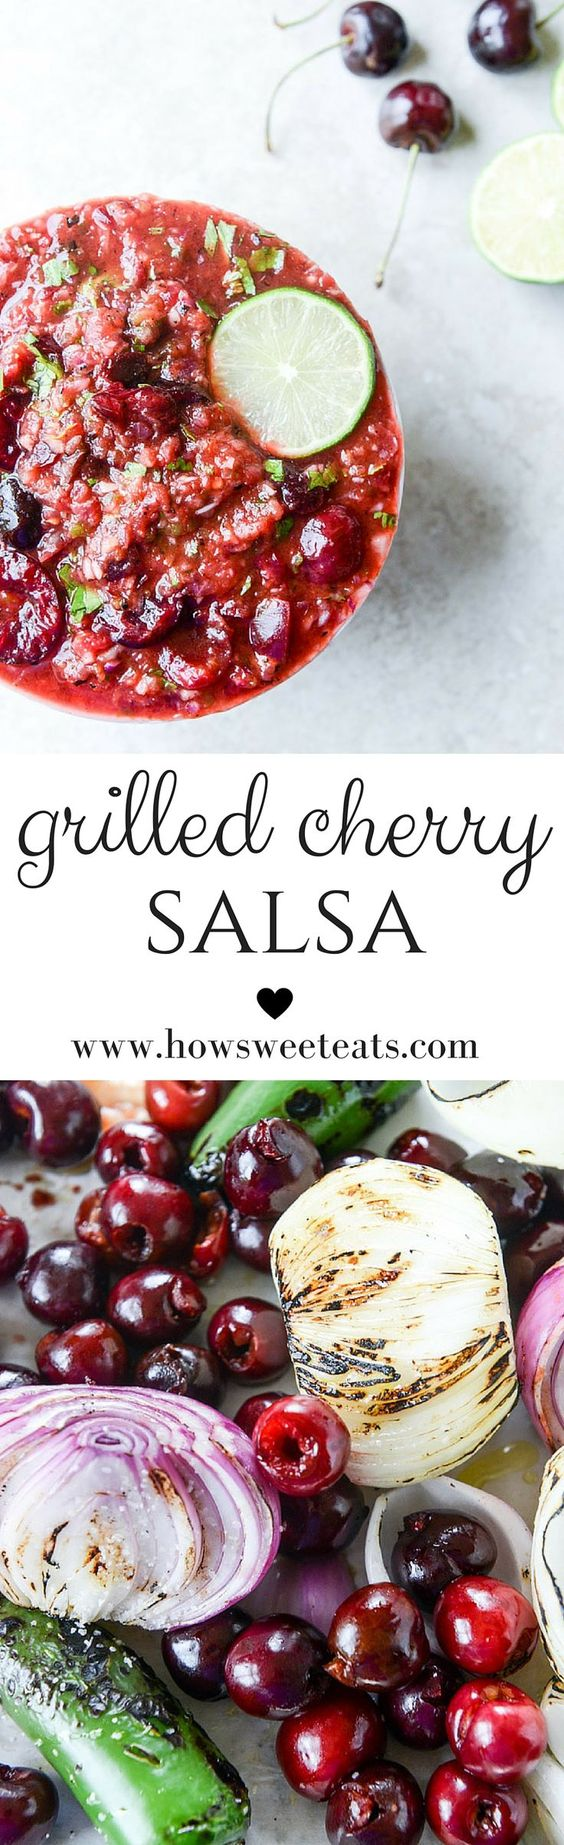 grilled cherry salsa I http://howsweeteats.com